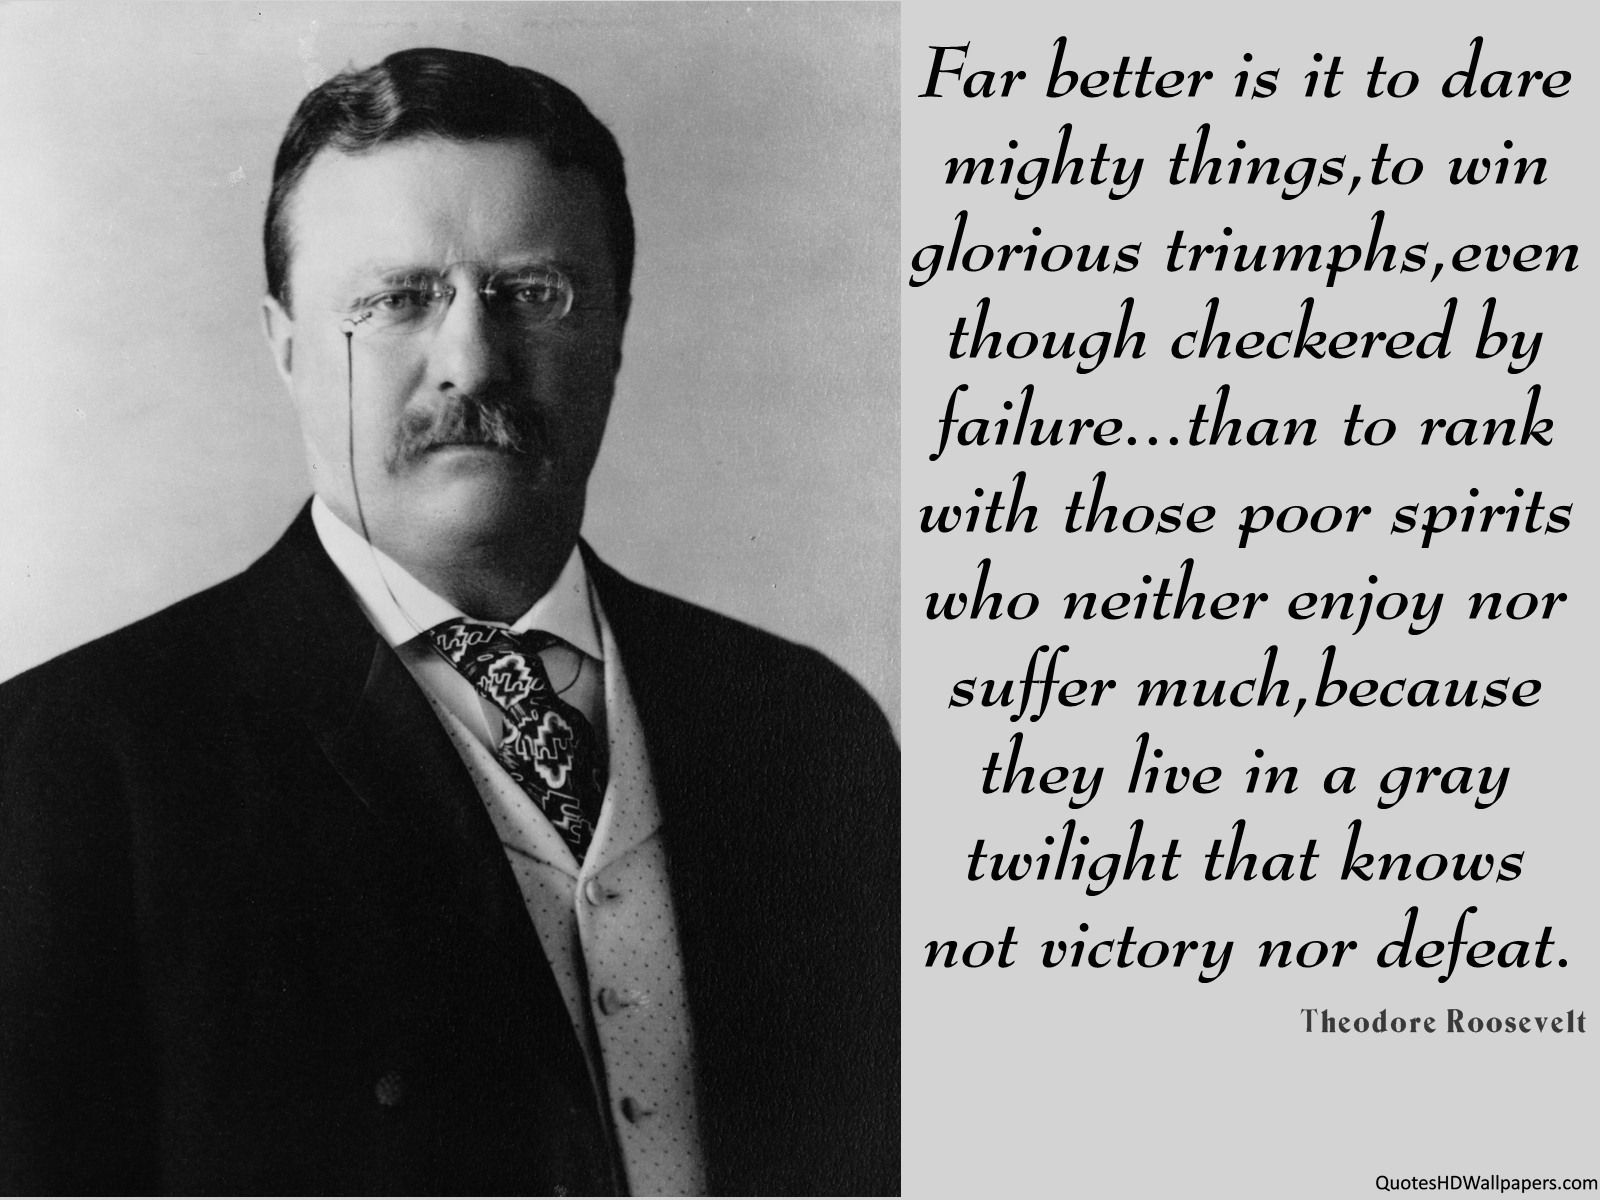 Teddy Roosevelt Quote Teddy Roosevelt Quotes Cool 25 Best Teddy Roosevelt Quotes Ideas